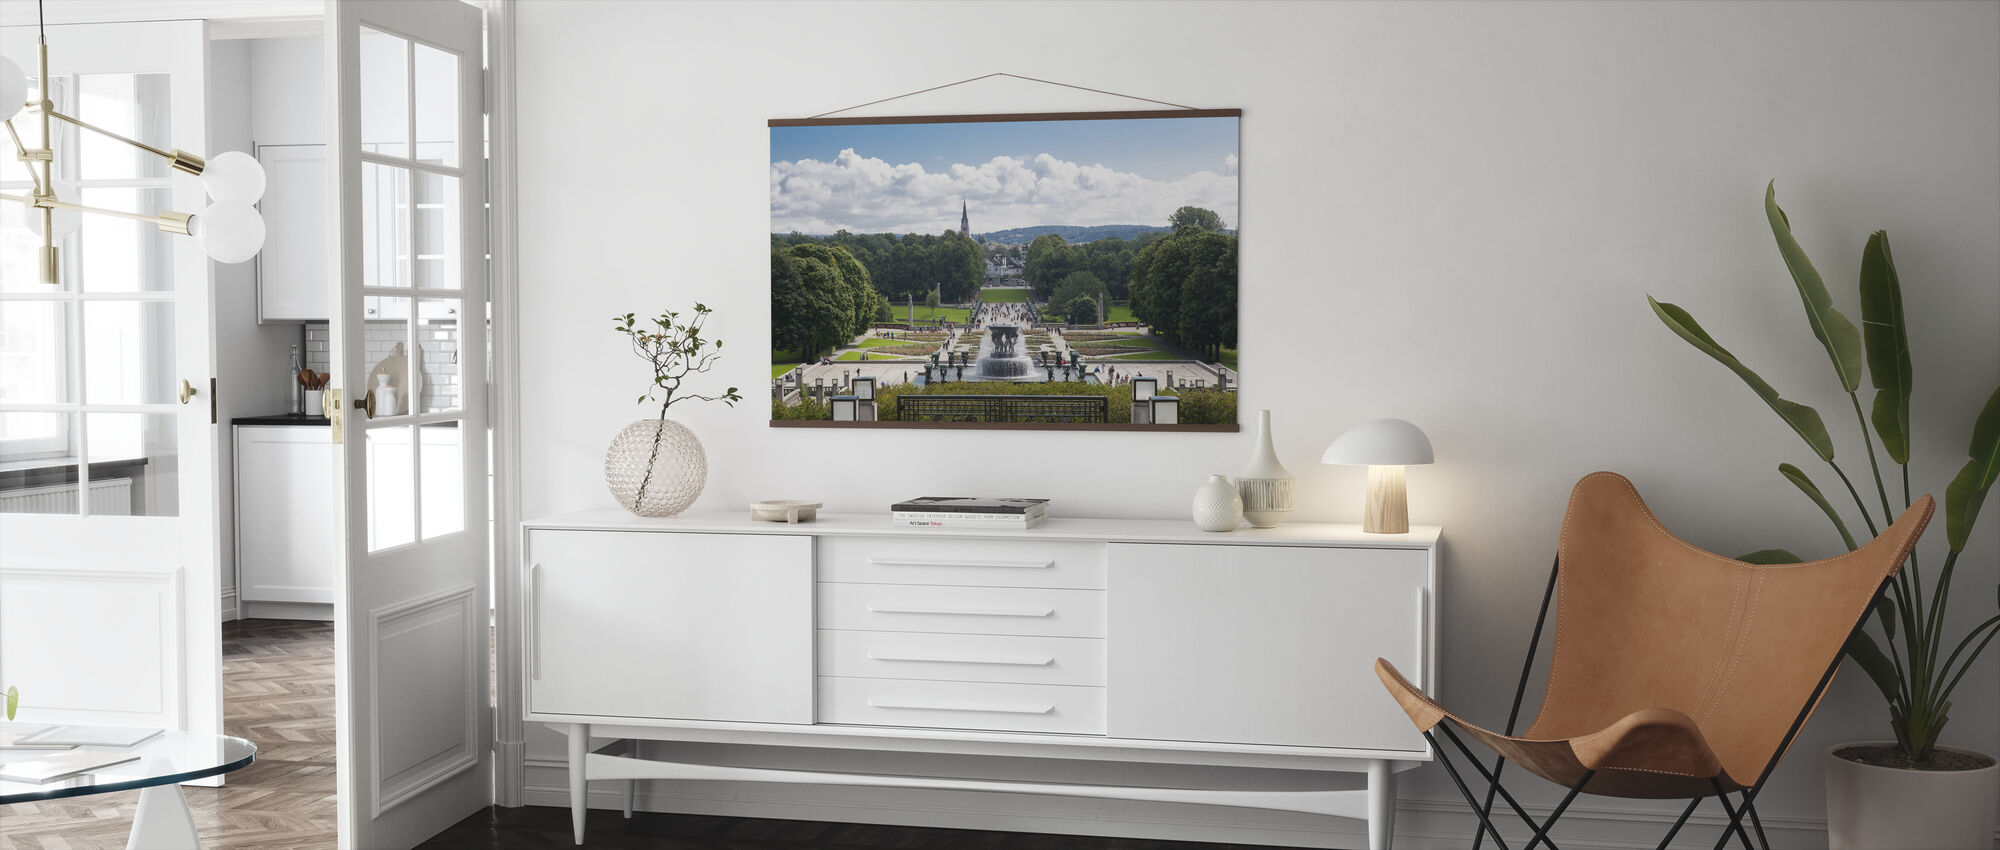 Vigeland Sculpture Park in Oslo, Norway - Poster - Living Room